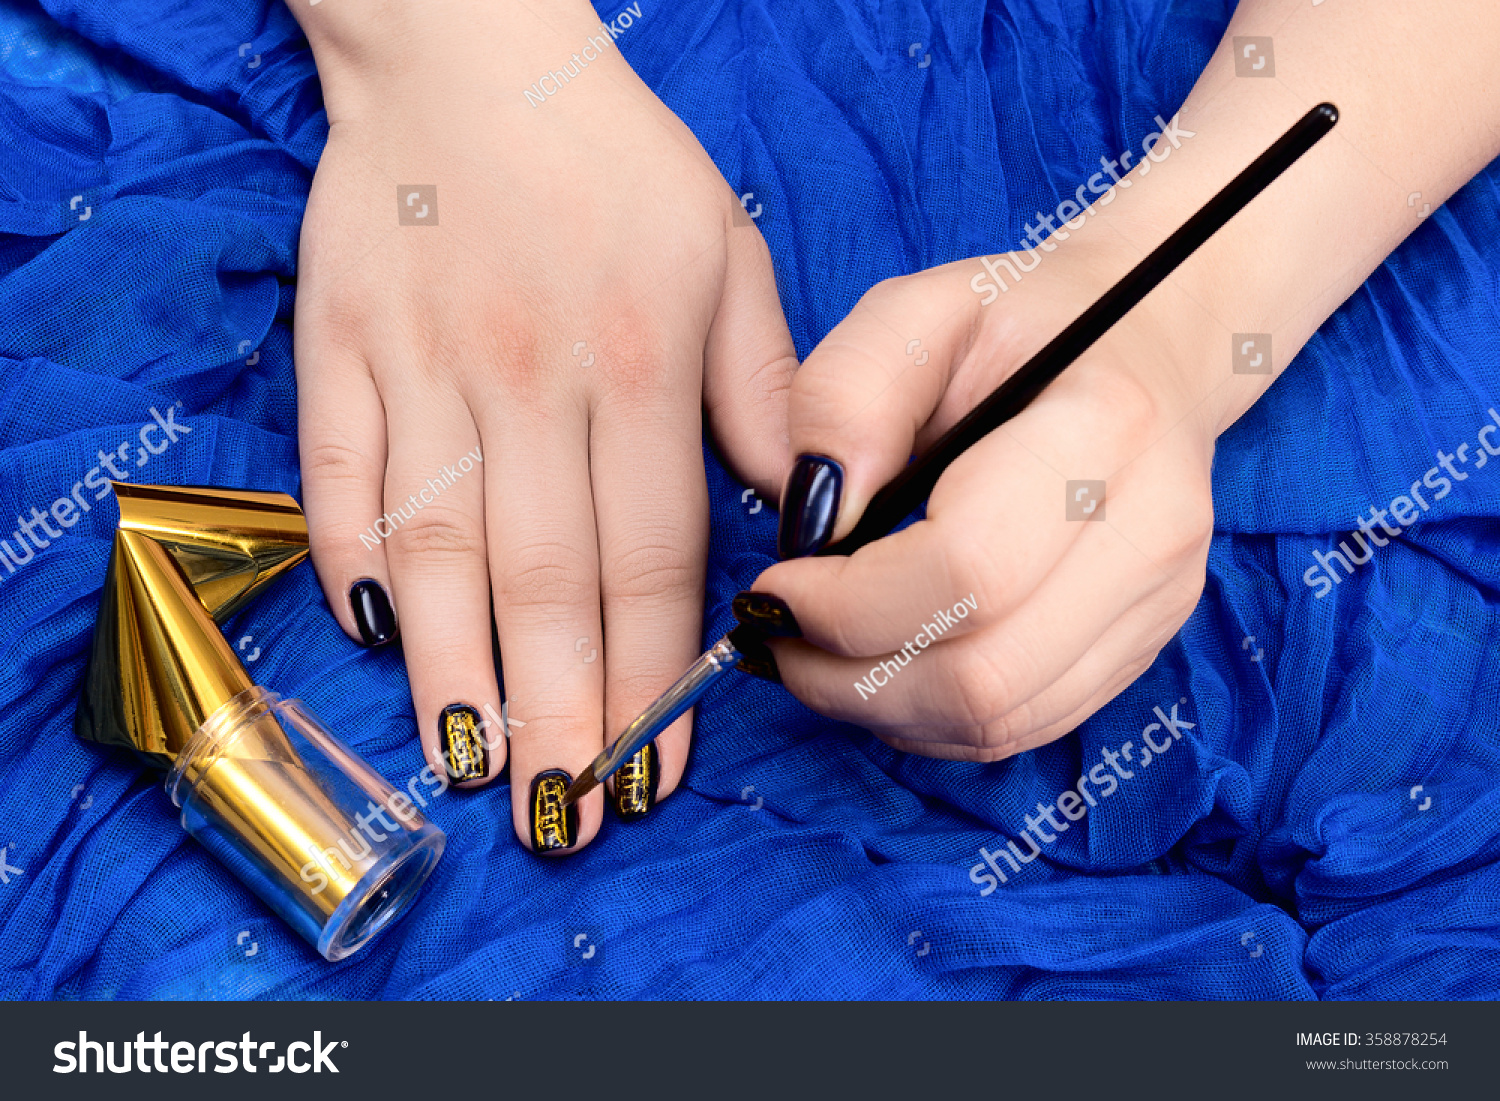 Painting Fingers Dark Blue Nails On Stock Photo 358878254 - Shutterstock